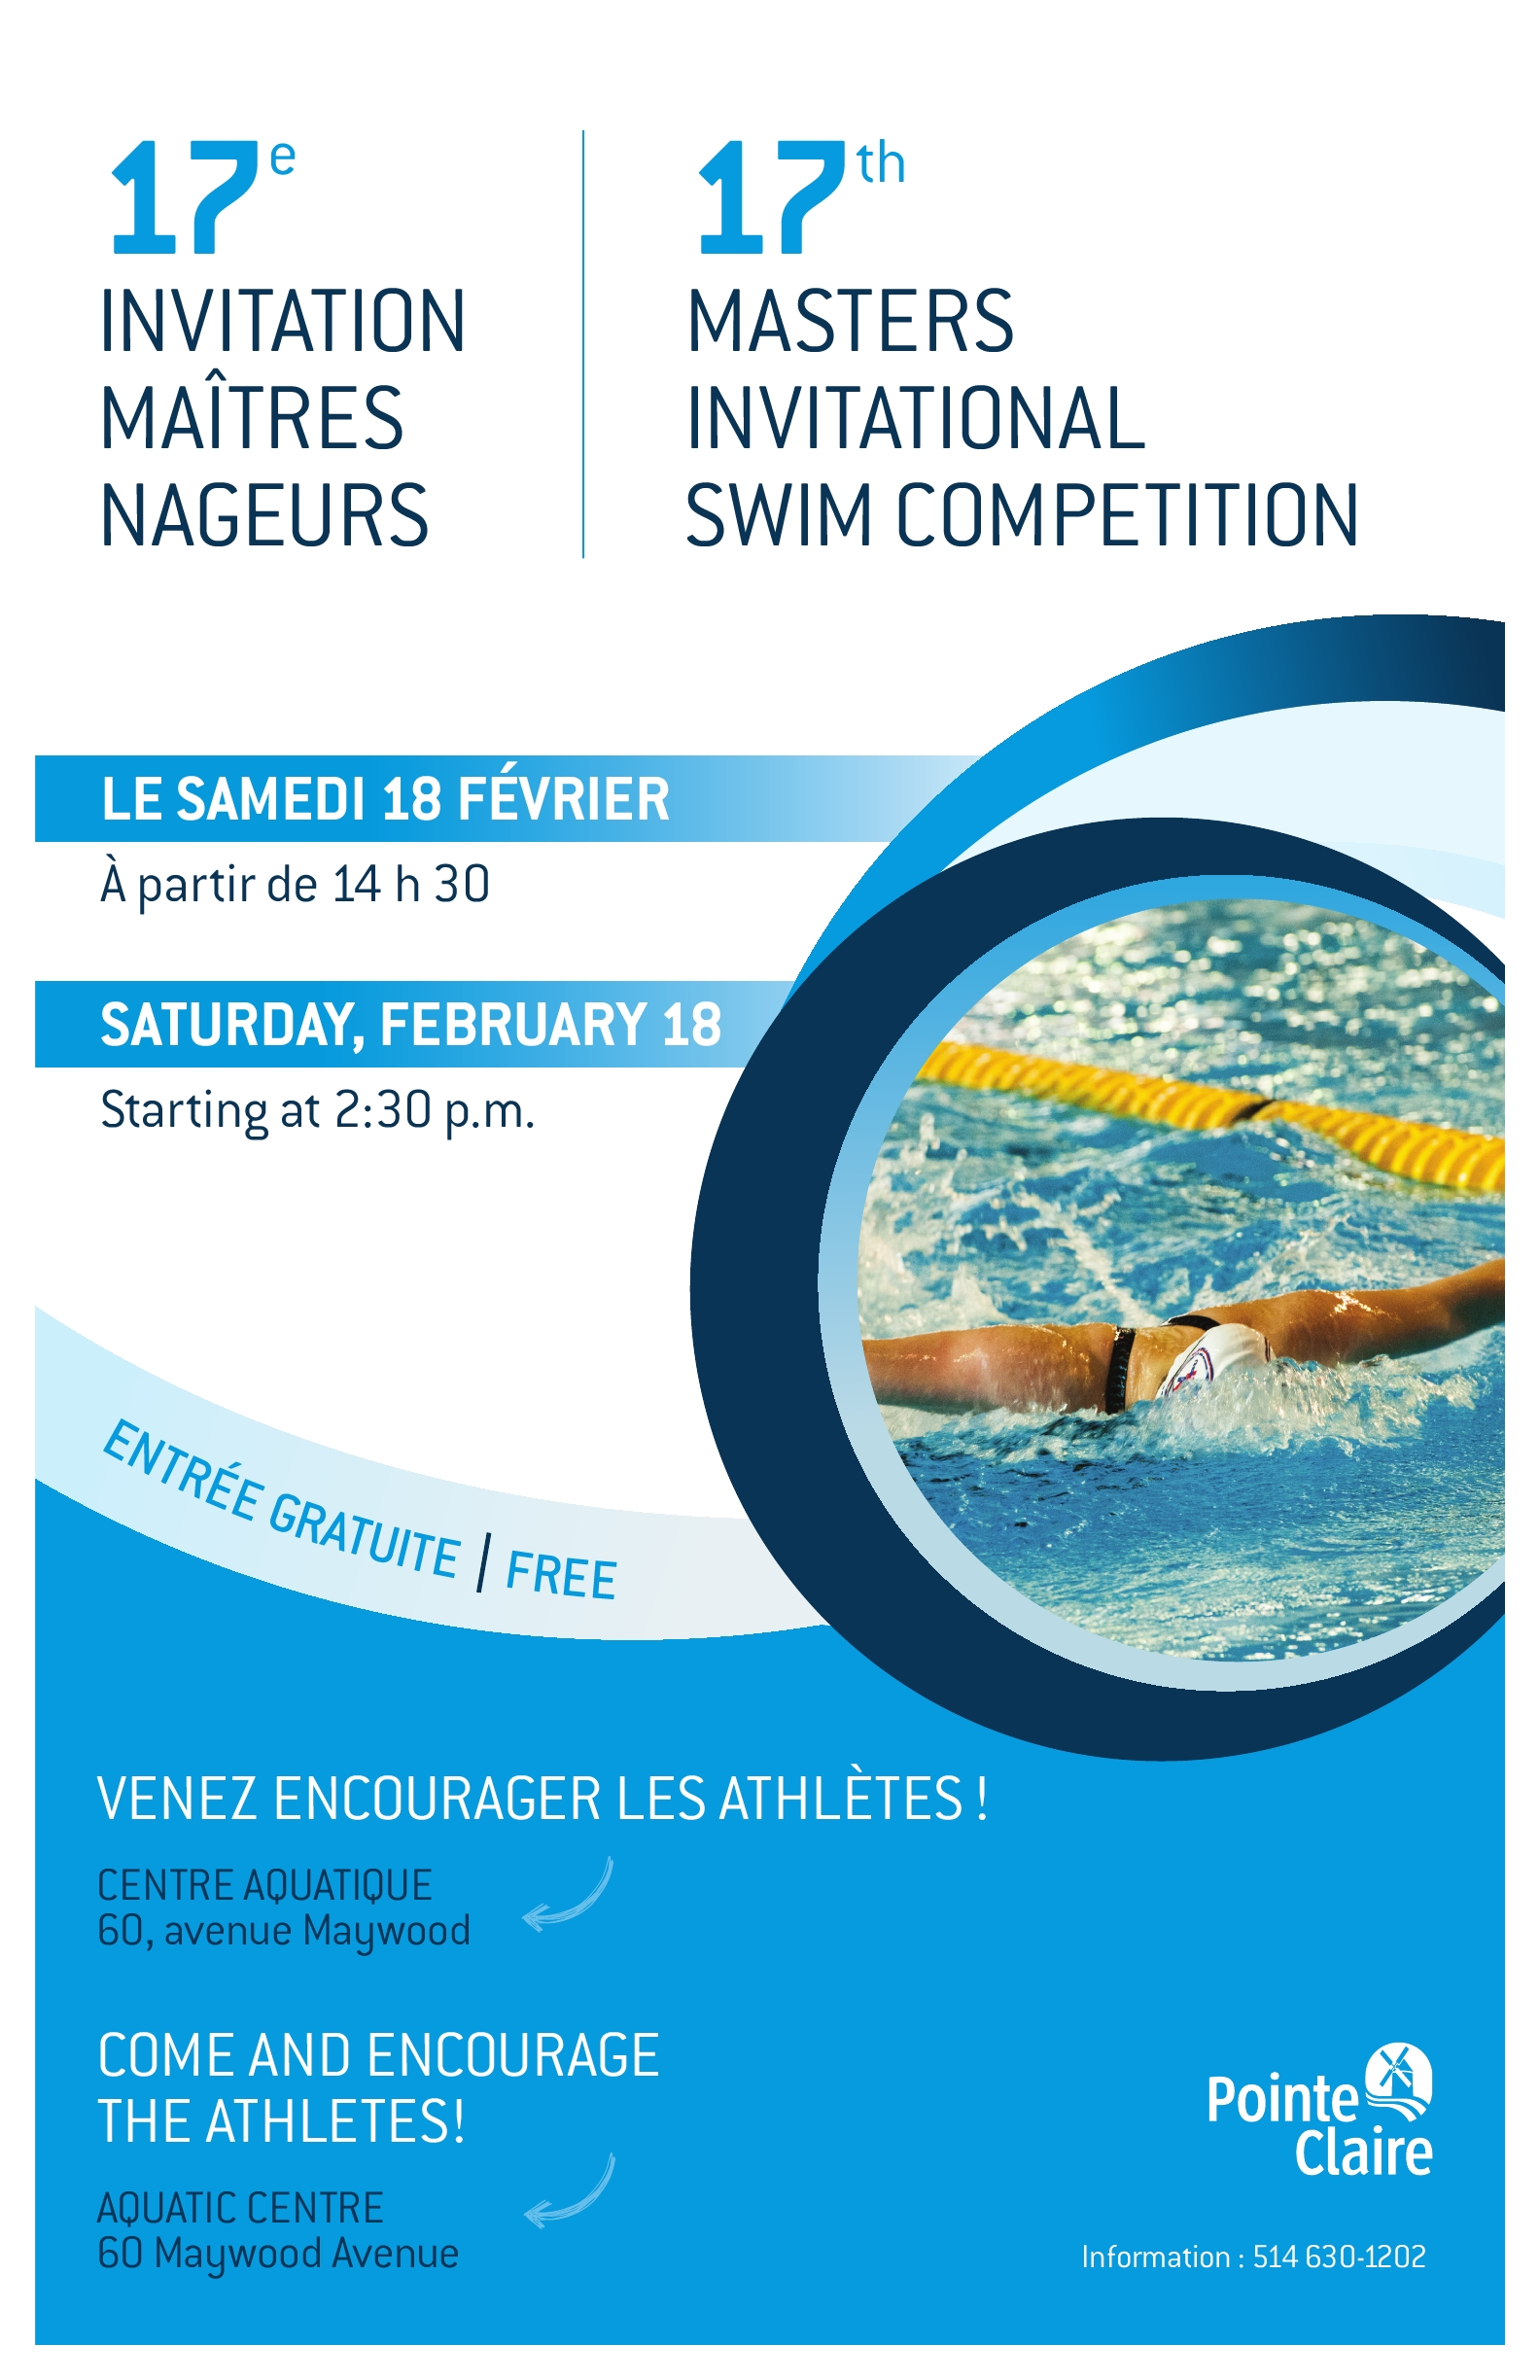 17th masters invitational swim competition ville de pointe claire for Pointe claire swimming pool schedule